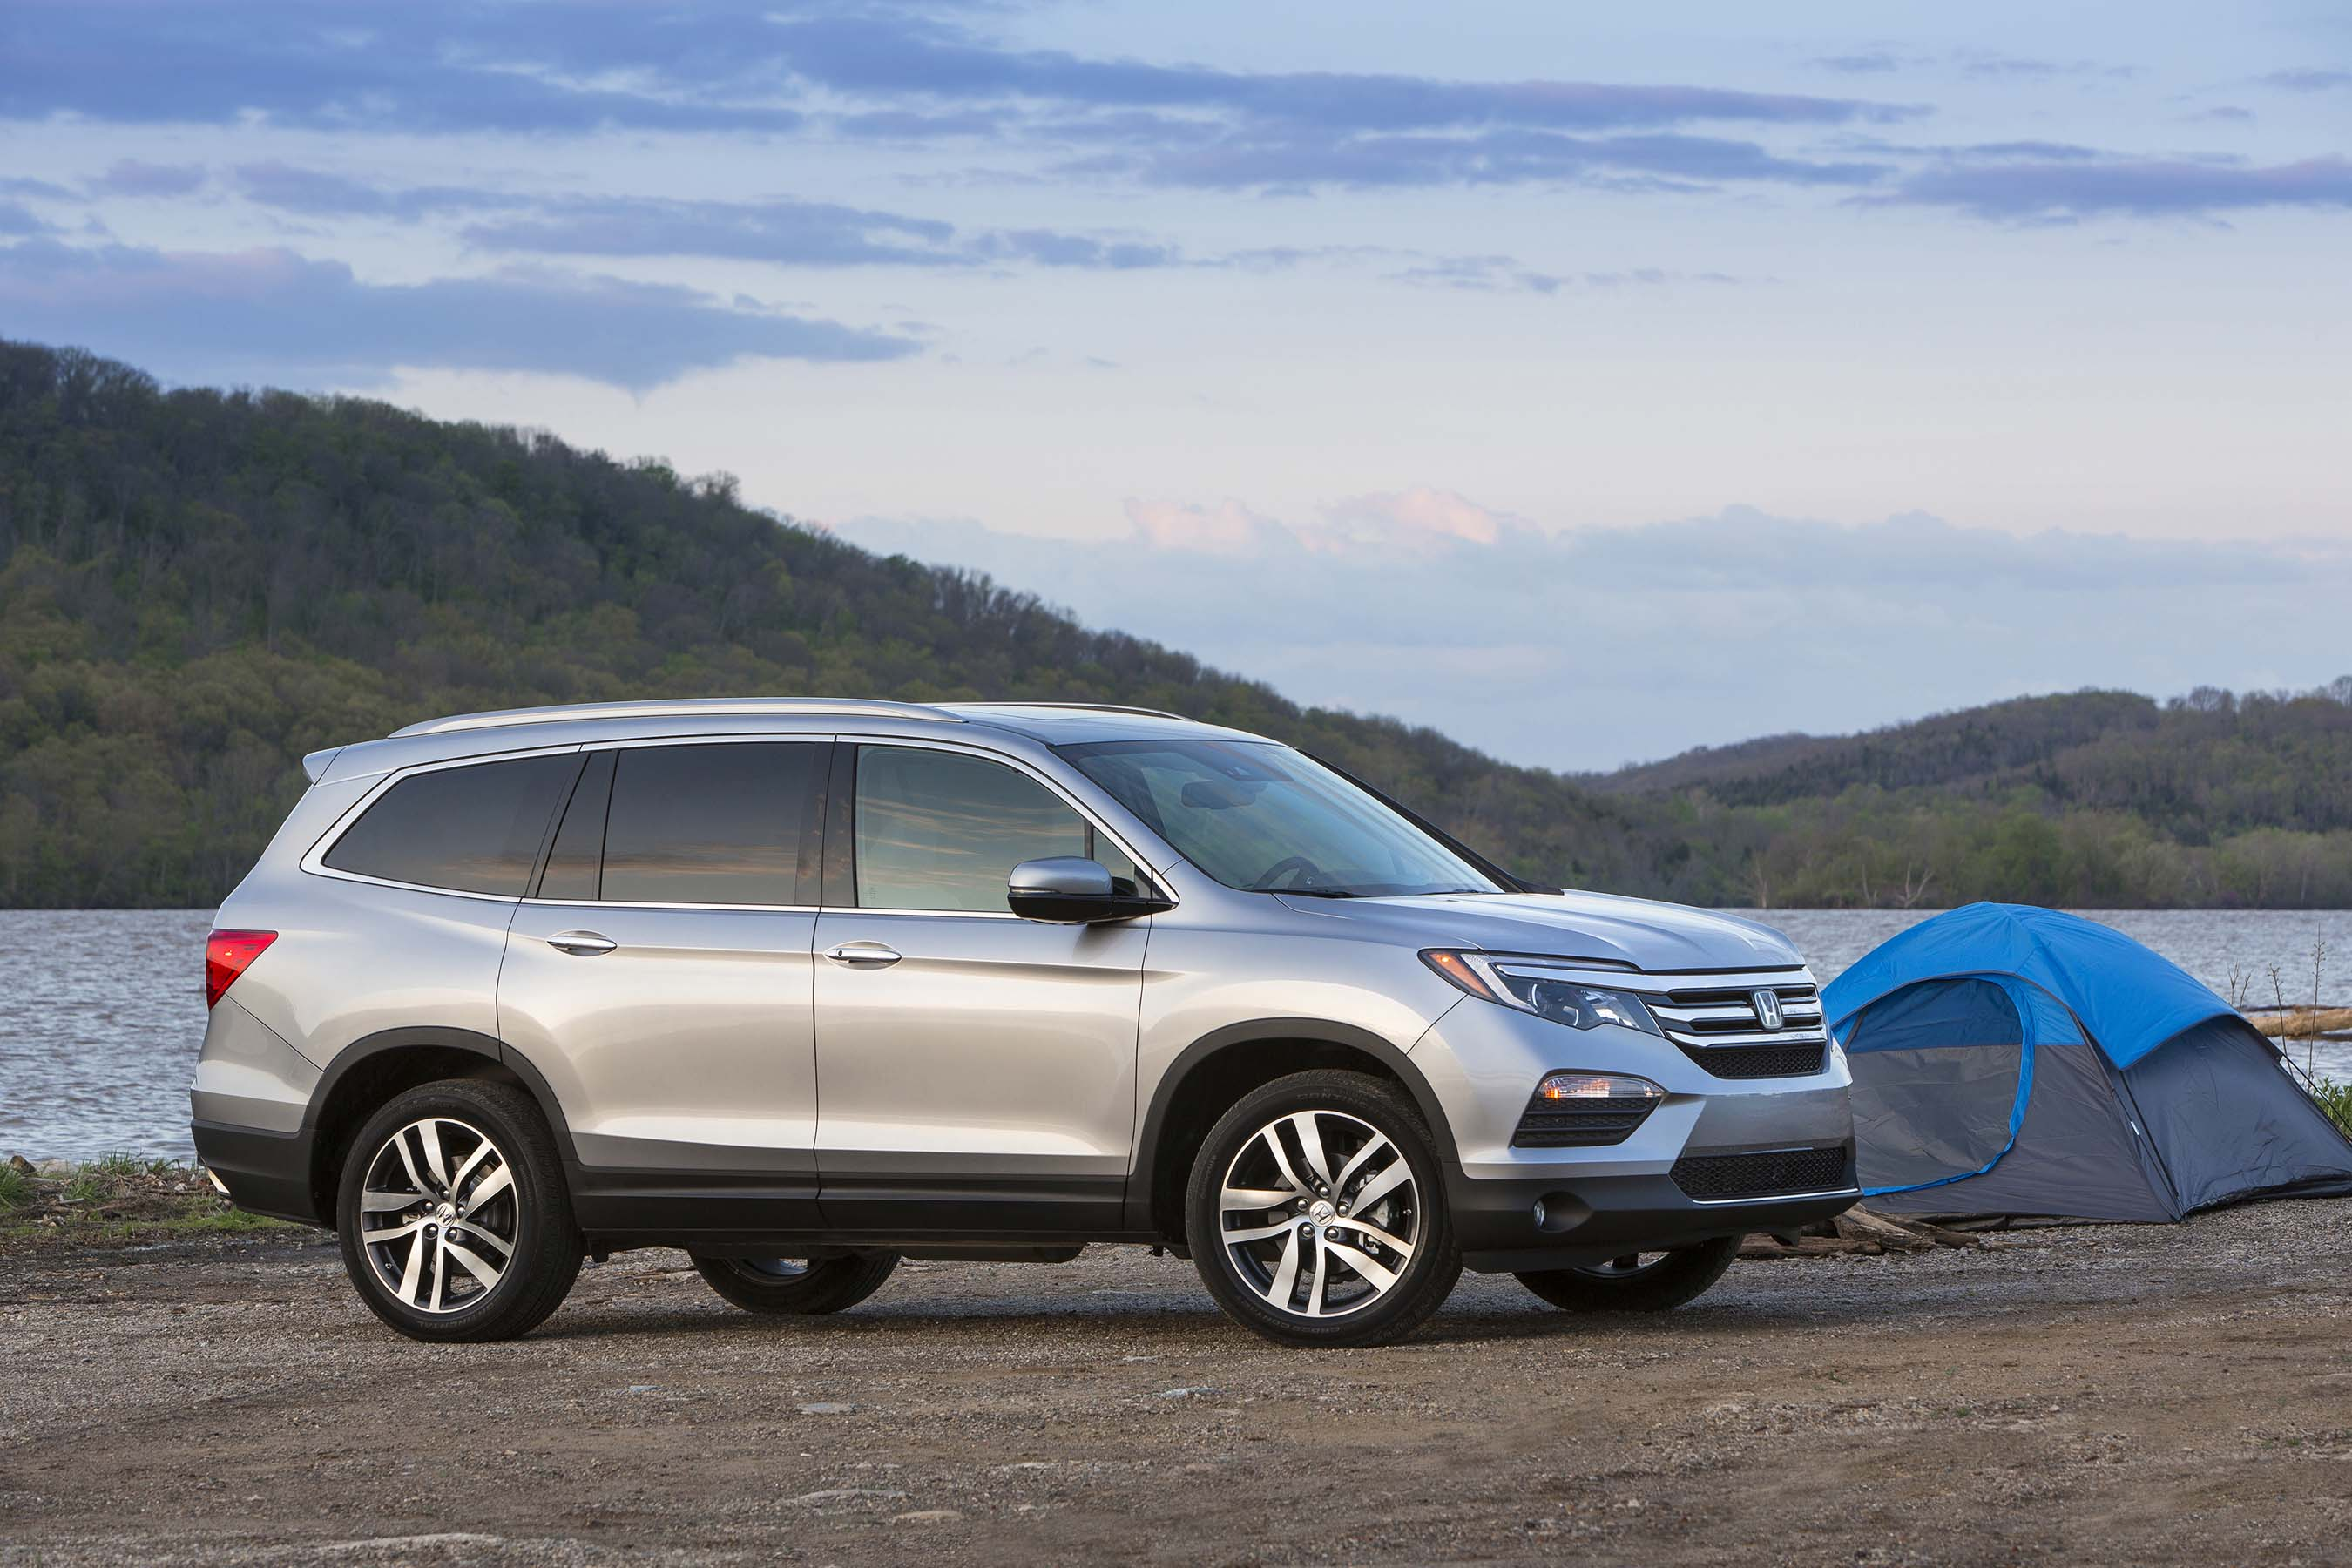 Kbb 16 Best Family Car The Totally Redesigned 2016 Honda Pilot Is